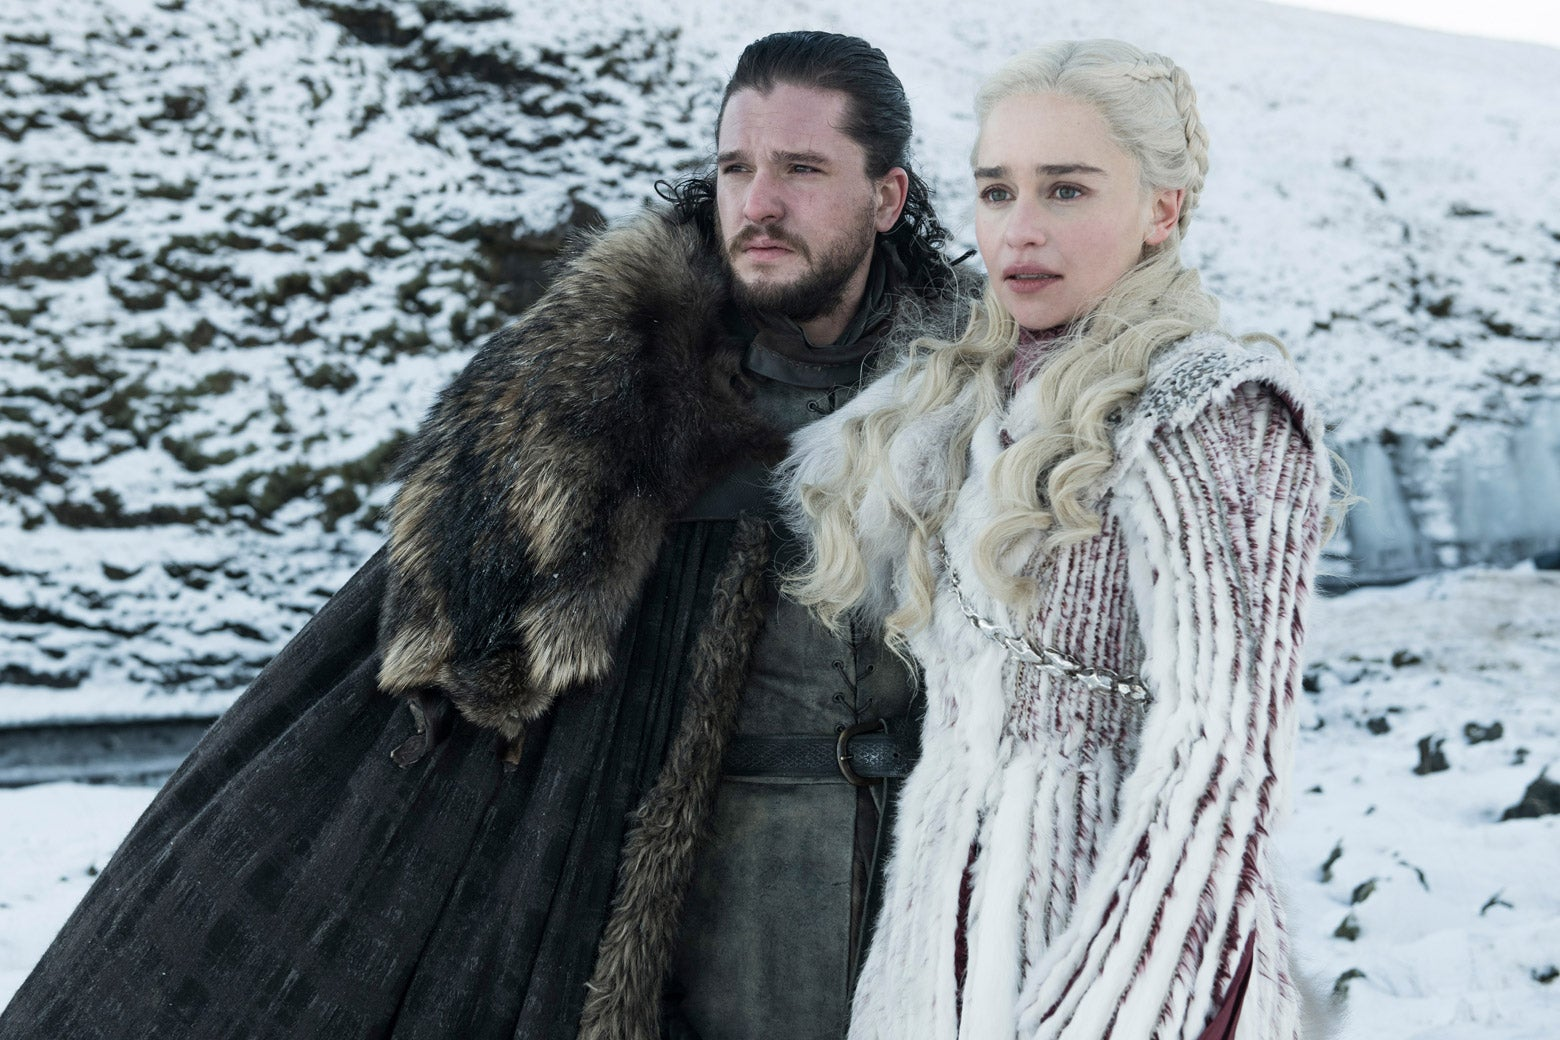 In a still from Game of Thrones, Jon Snow and Daenerys Targaryen stand beside each other in a snowy landscape.